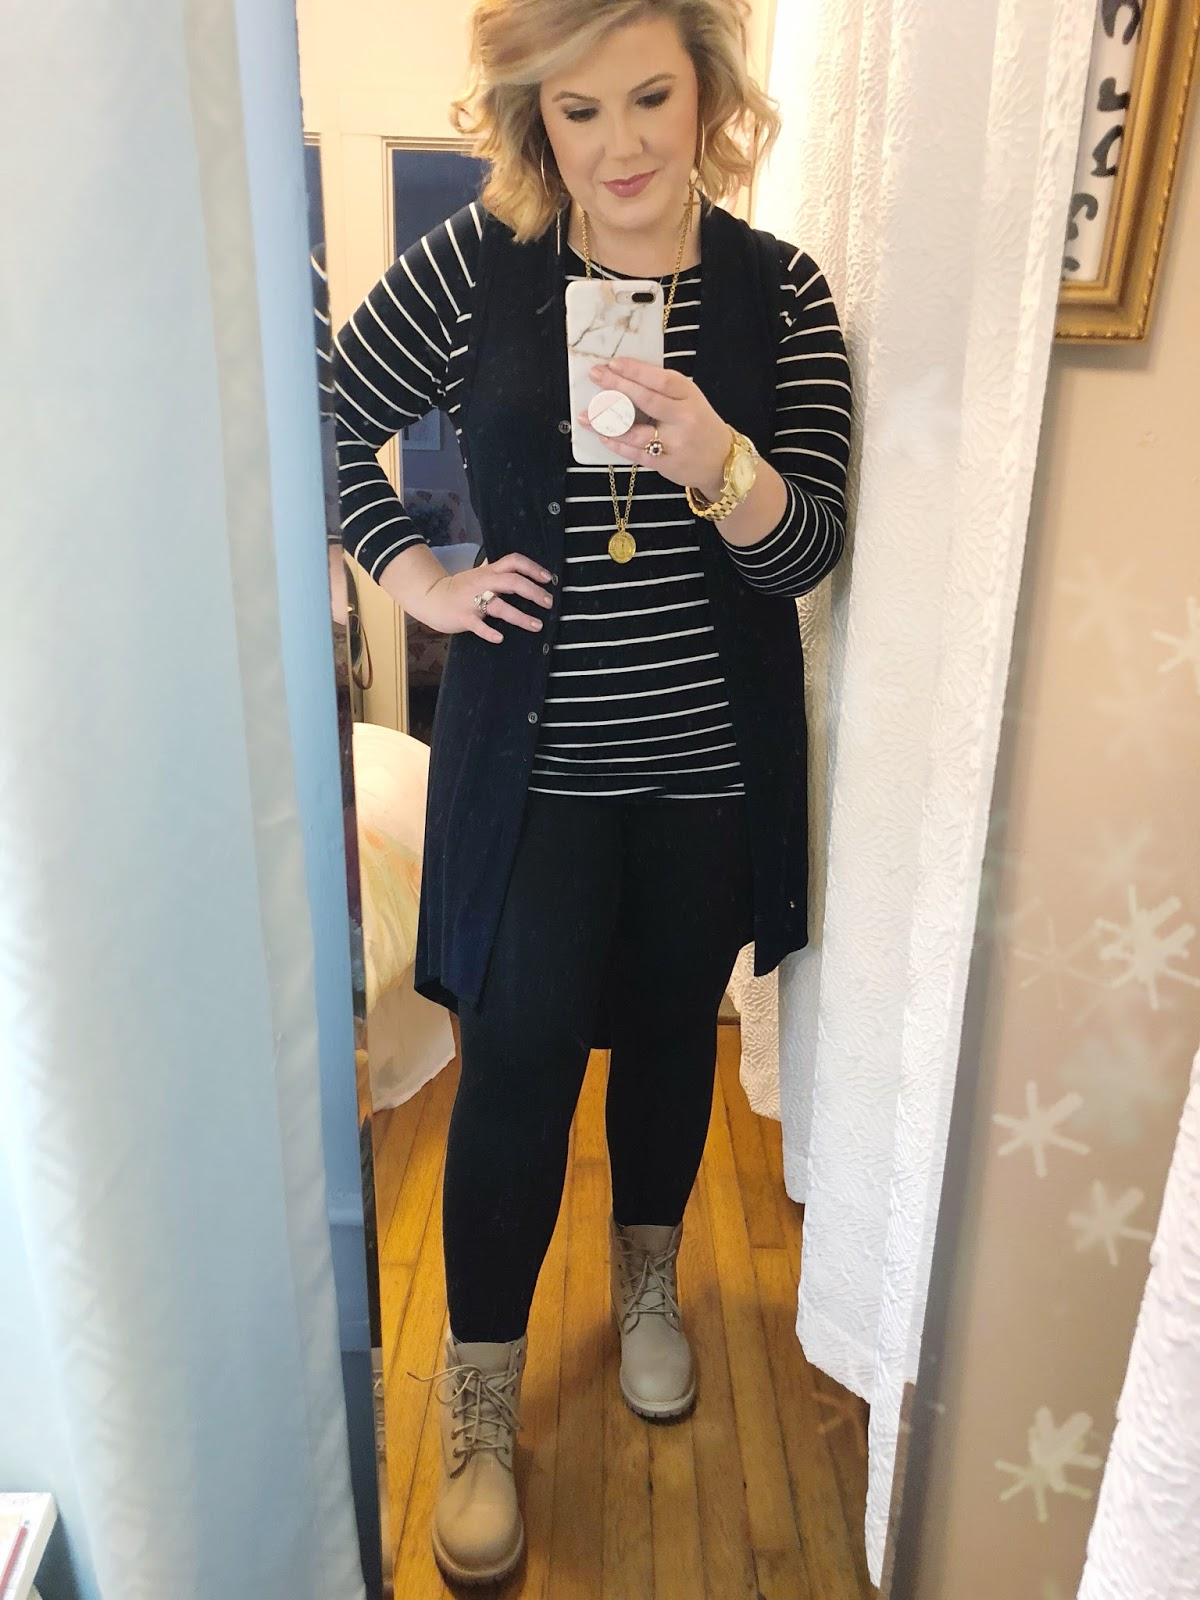 Easy outfits for work all black outfit Timberland boots